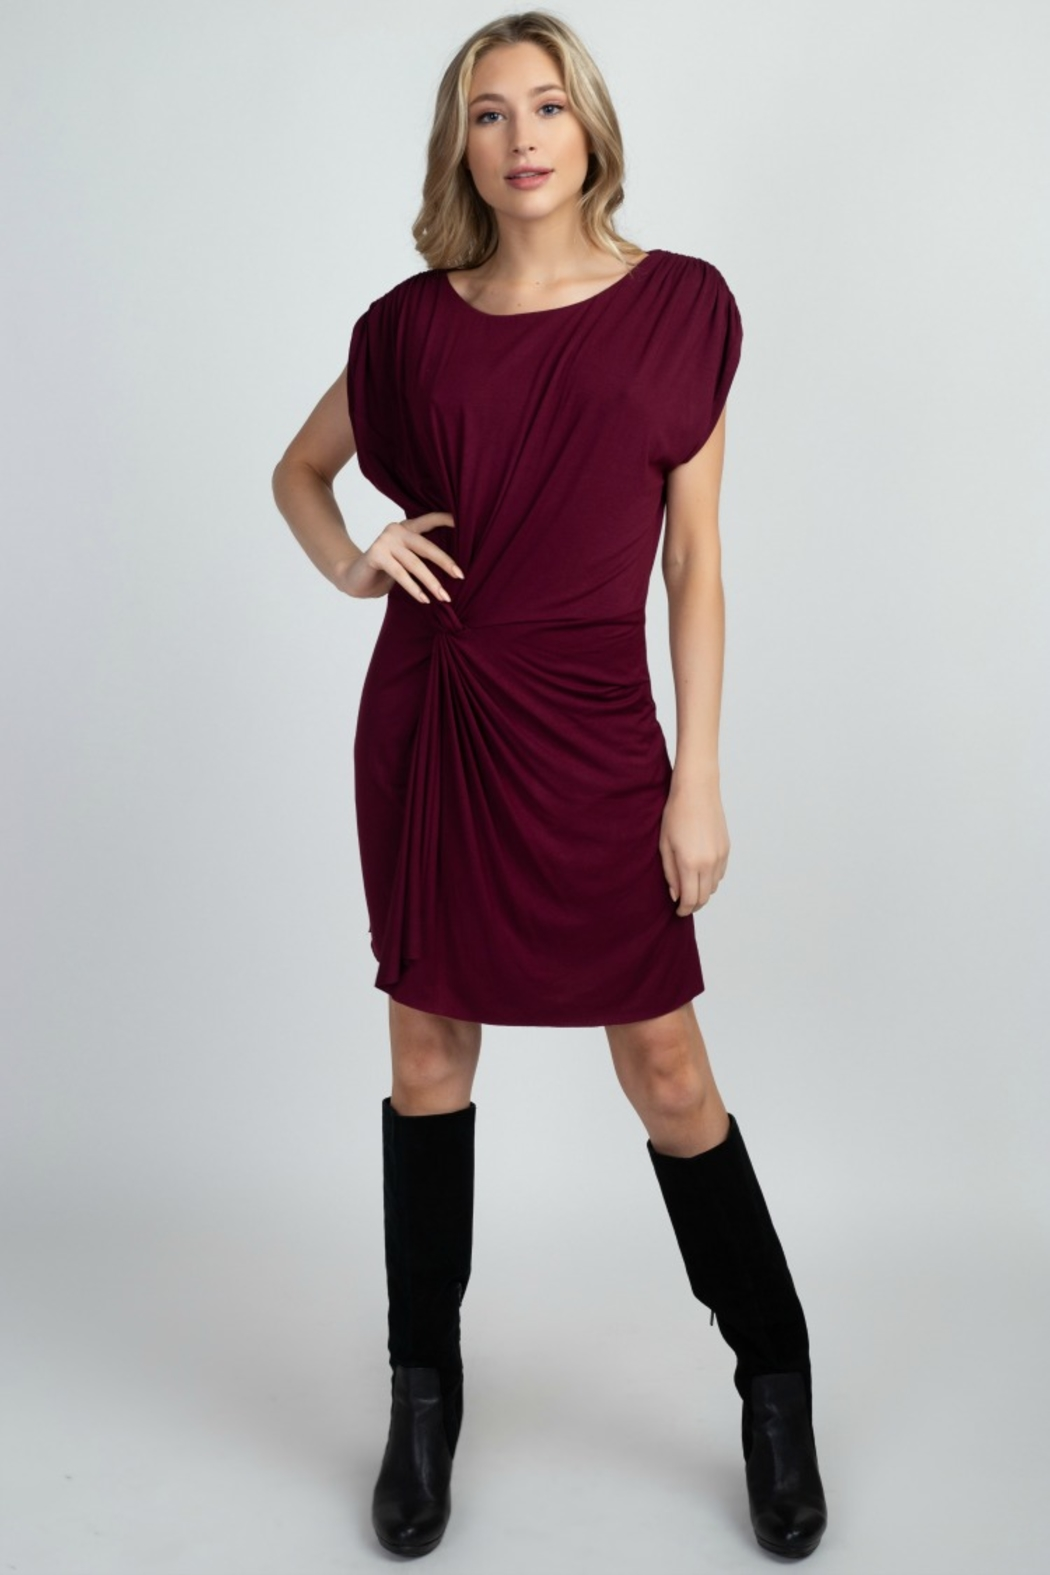 Olivia Graye KNOT SO NAUGHTY DRESS - Front Cropped Image